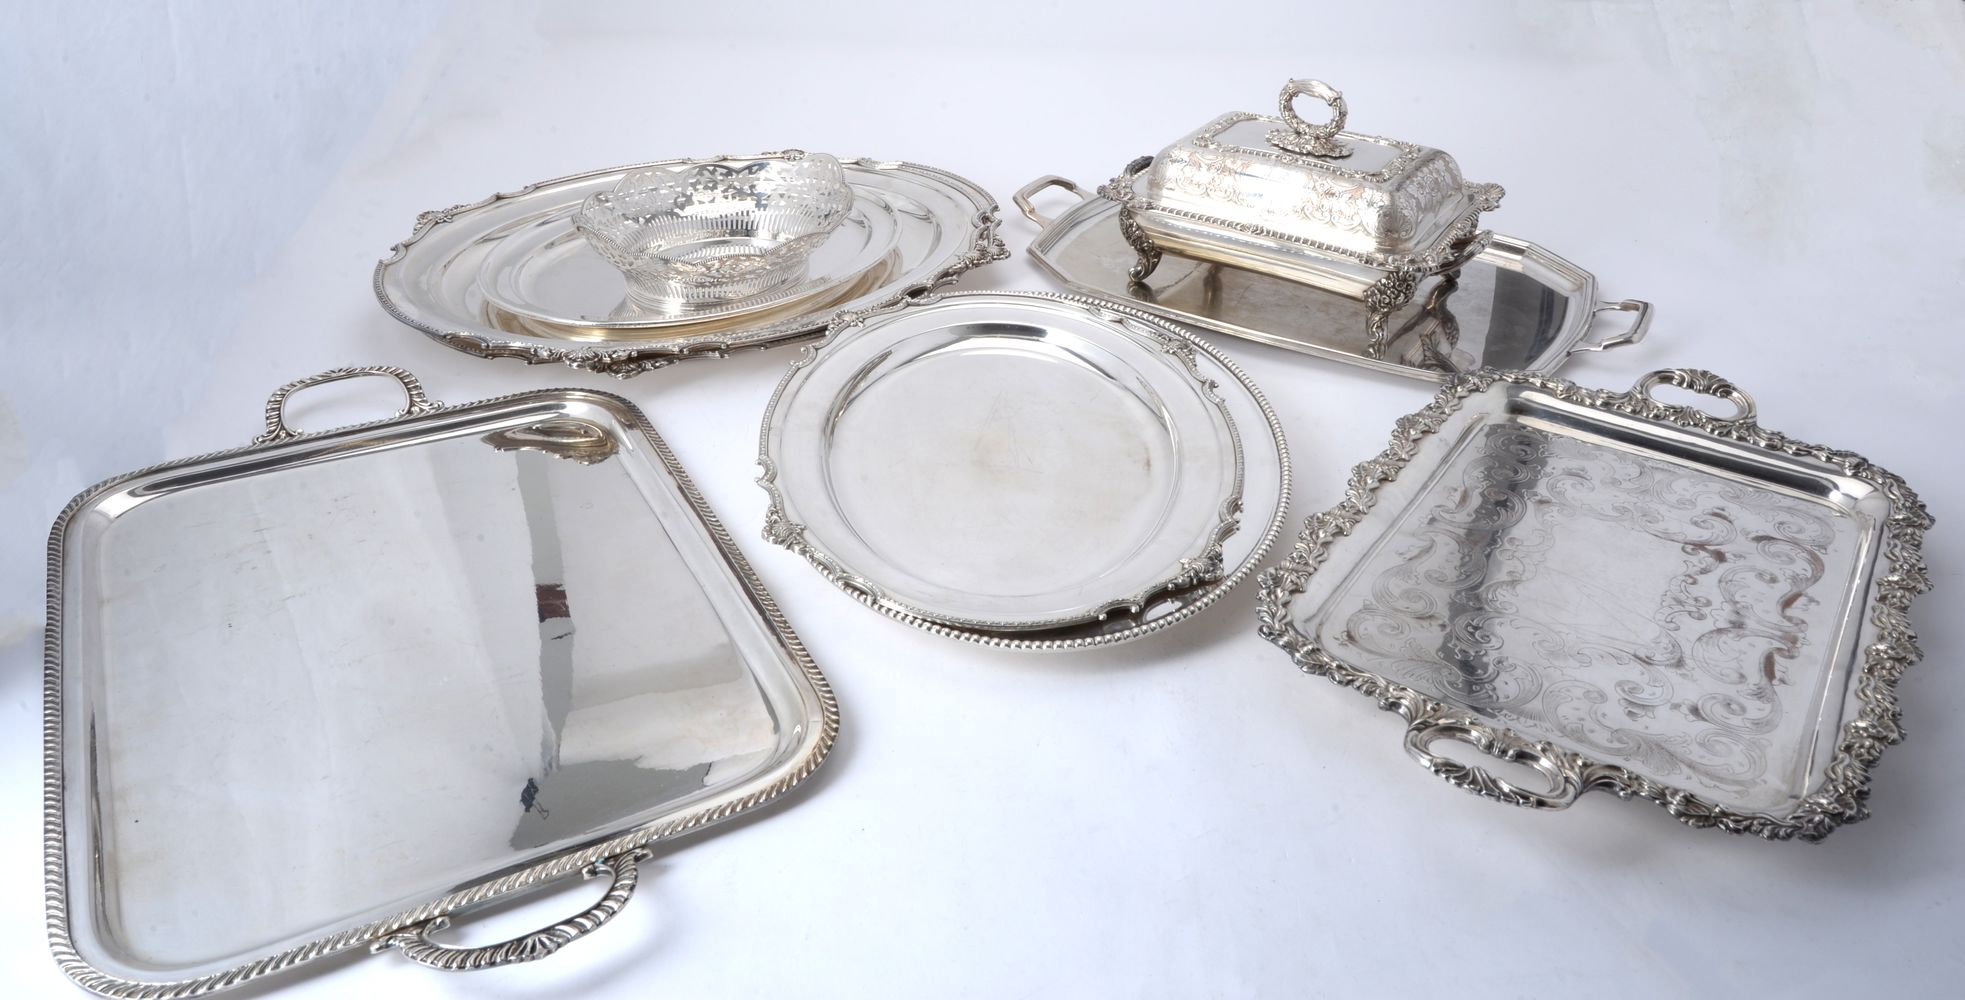 A quantity of electro-plated wares